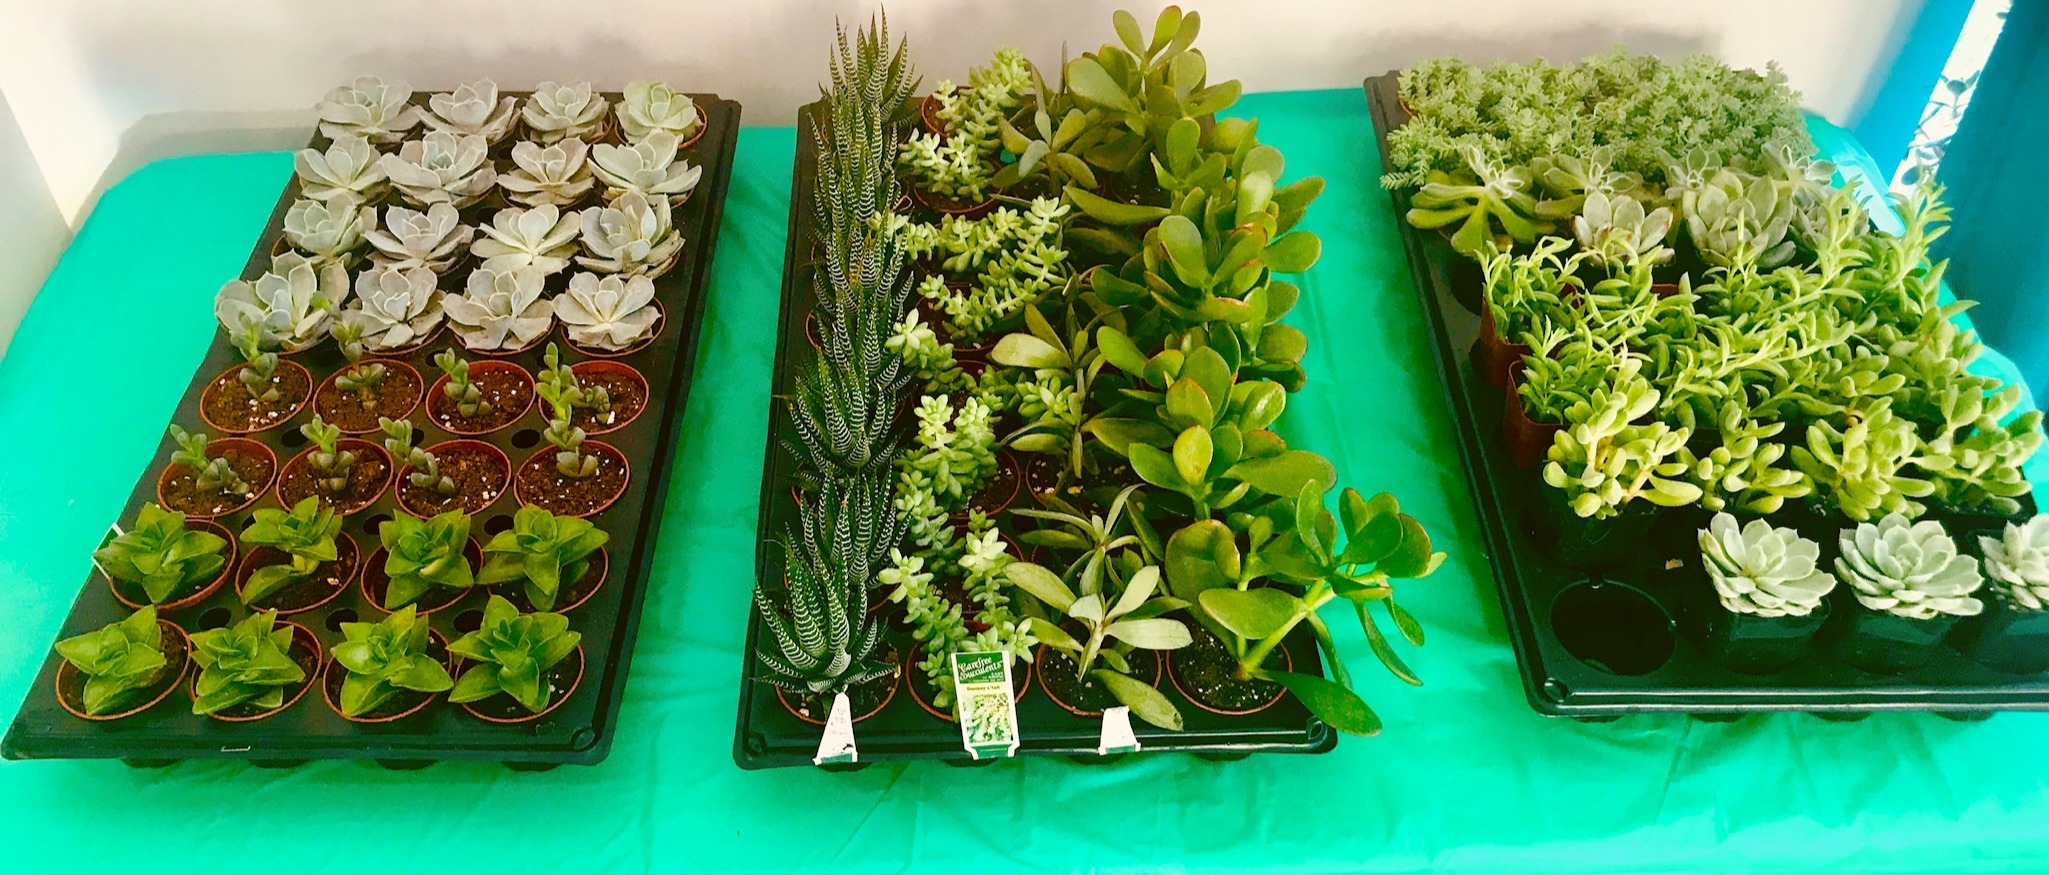 Lots of succulents to choose from